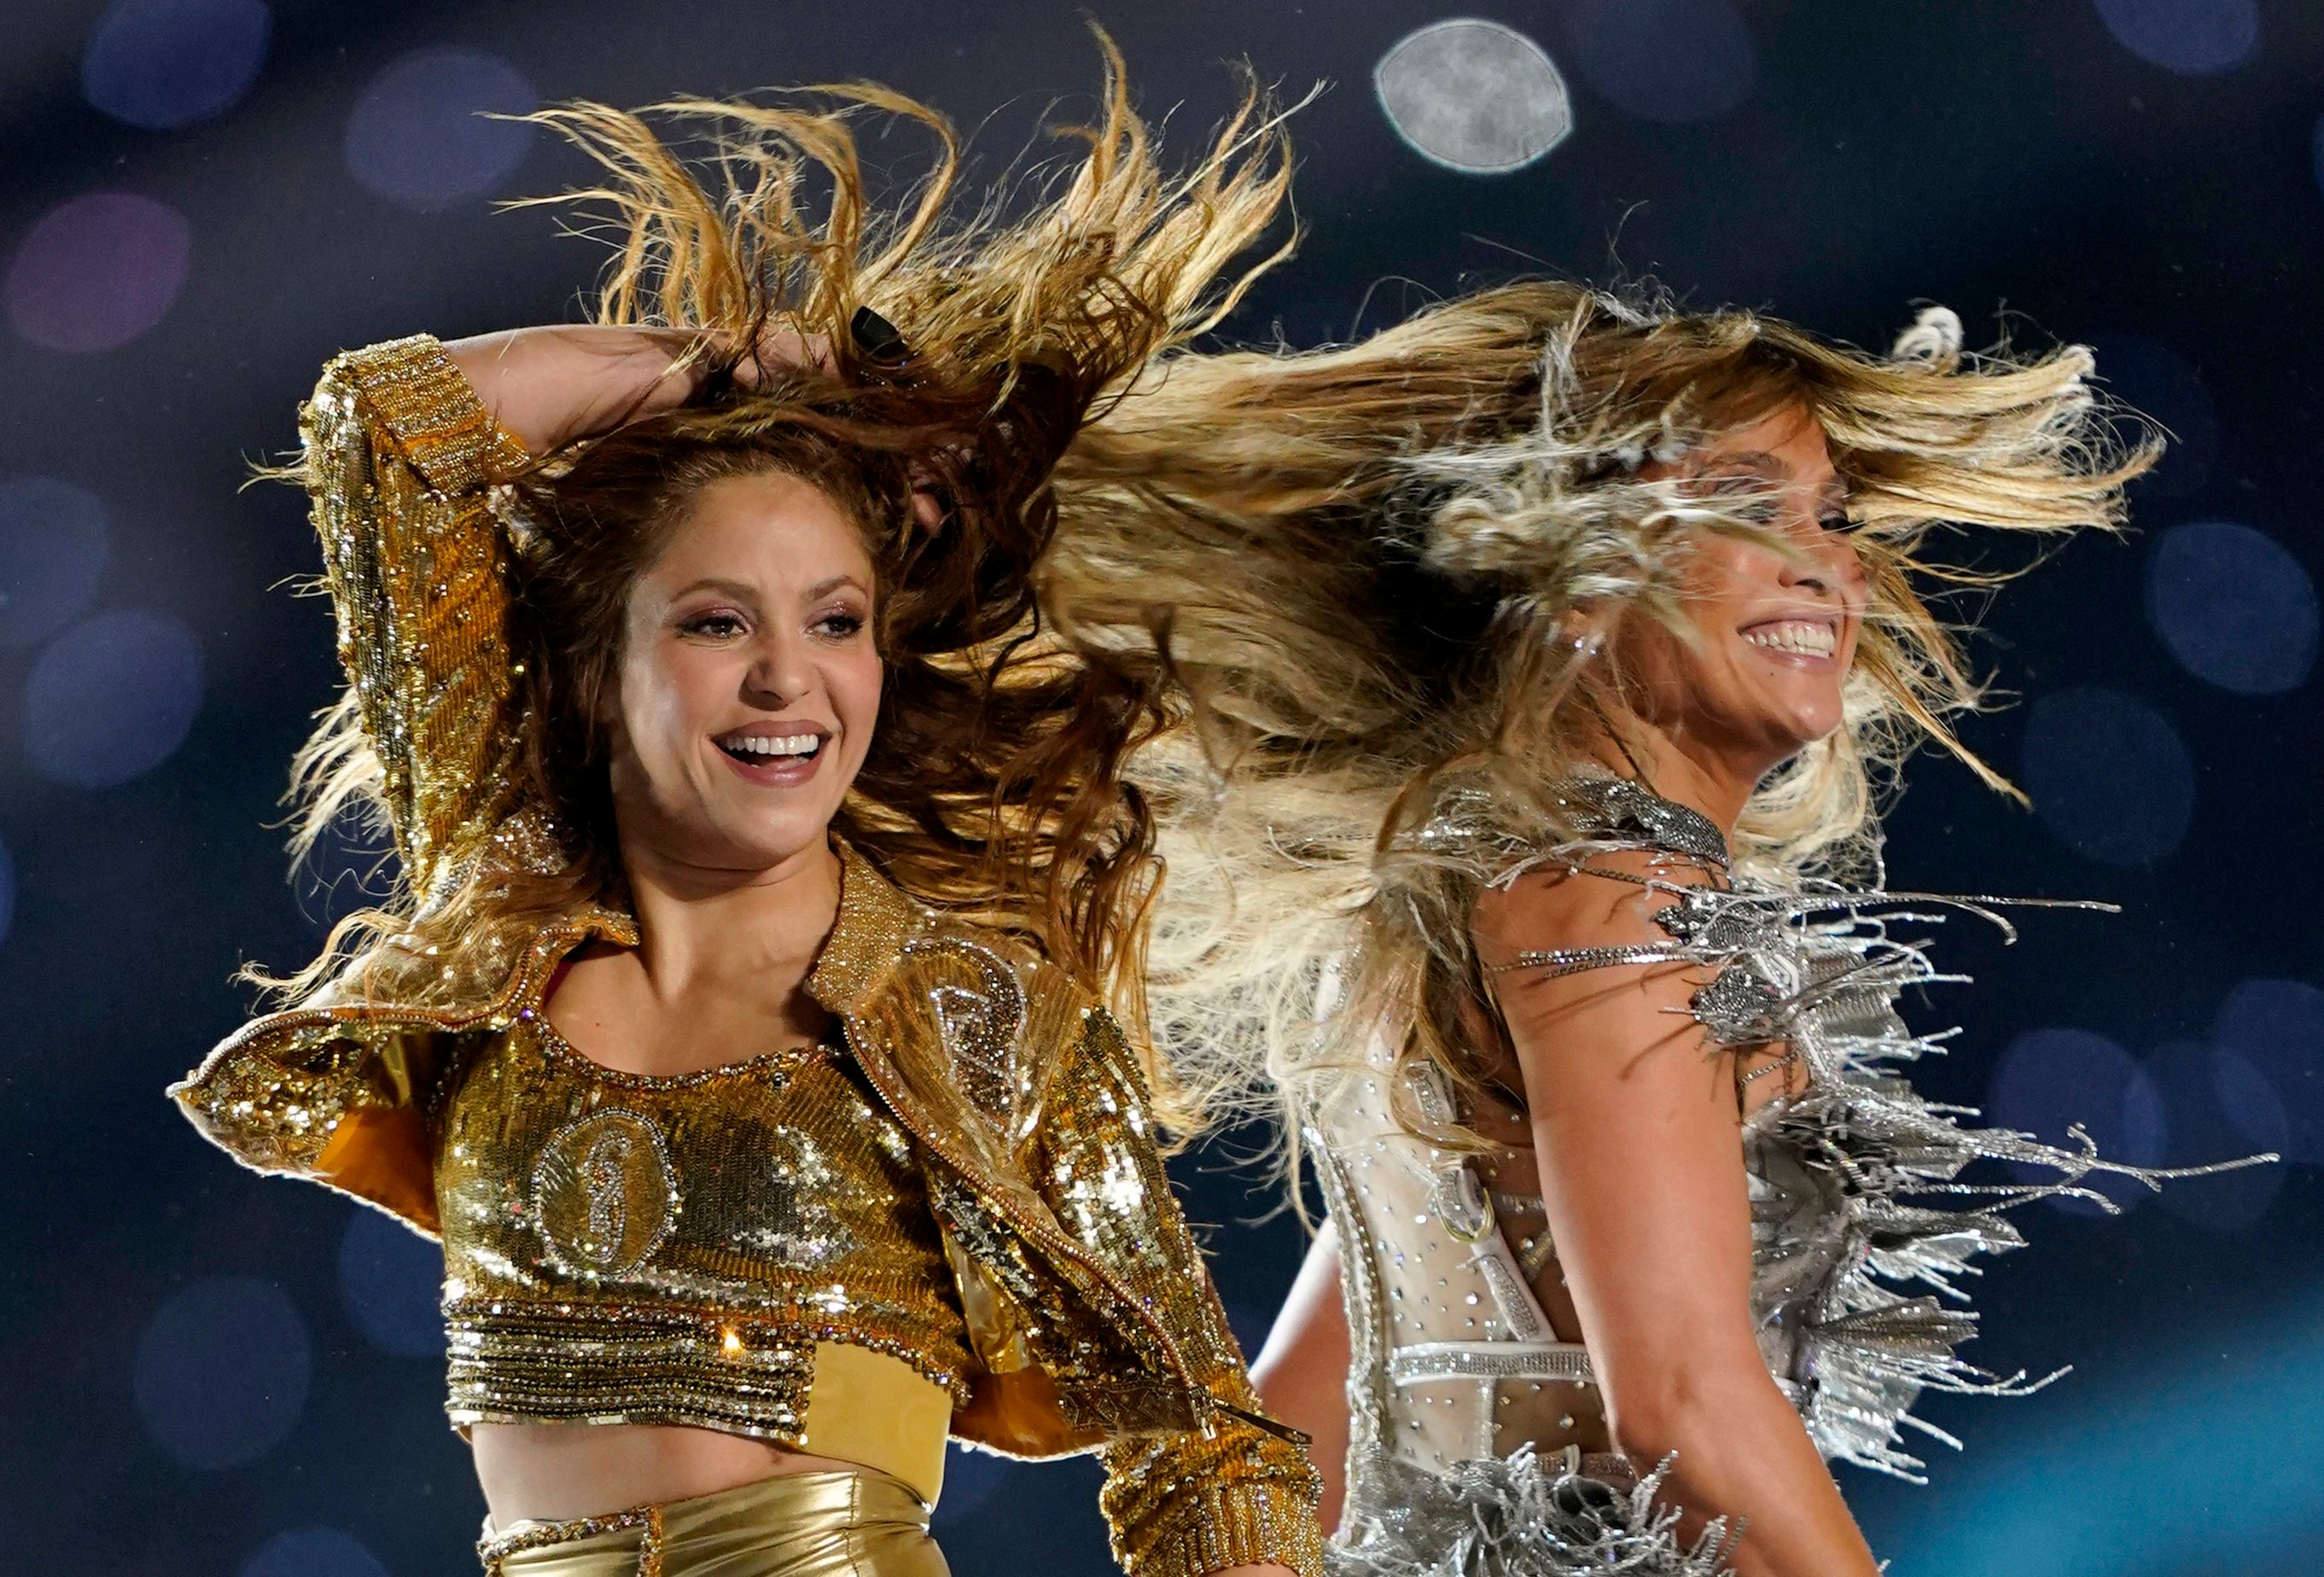 Cuenco: The look for less: J. Lo and Shakira's Superbowl makeup